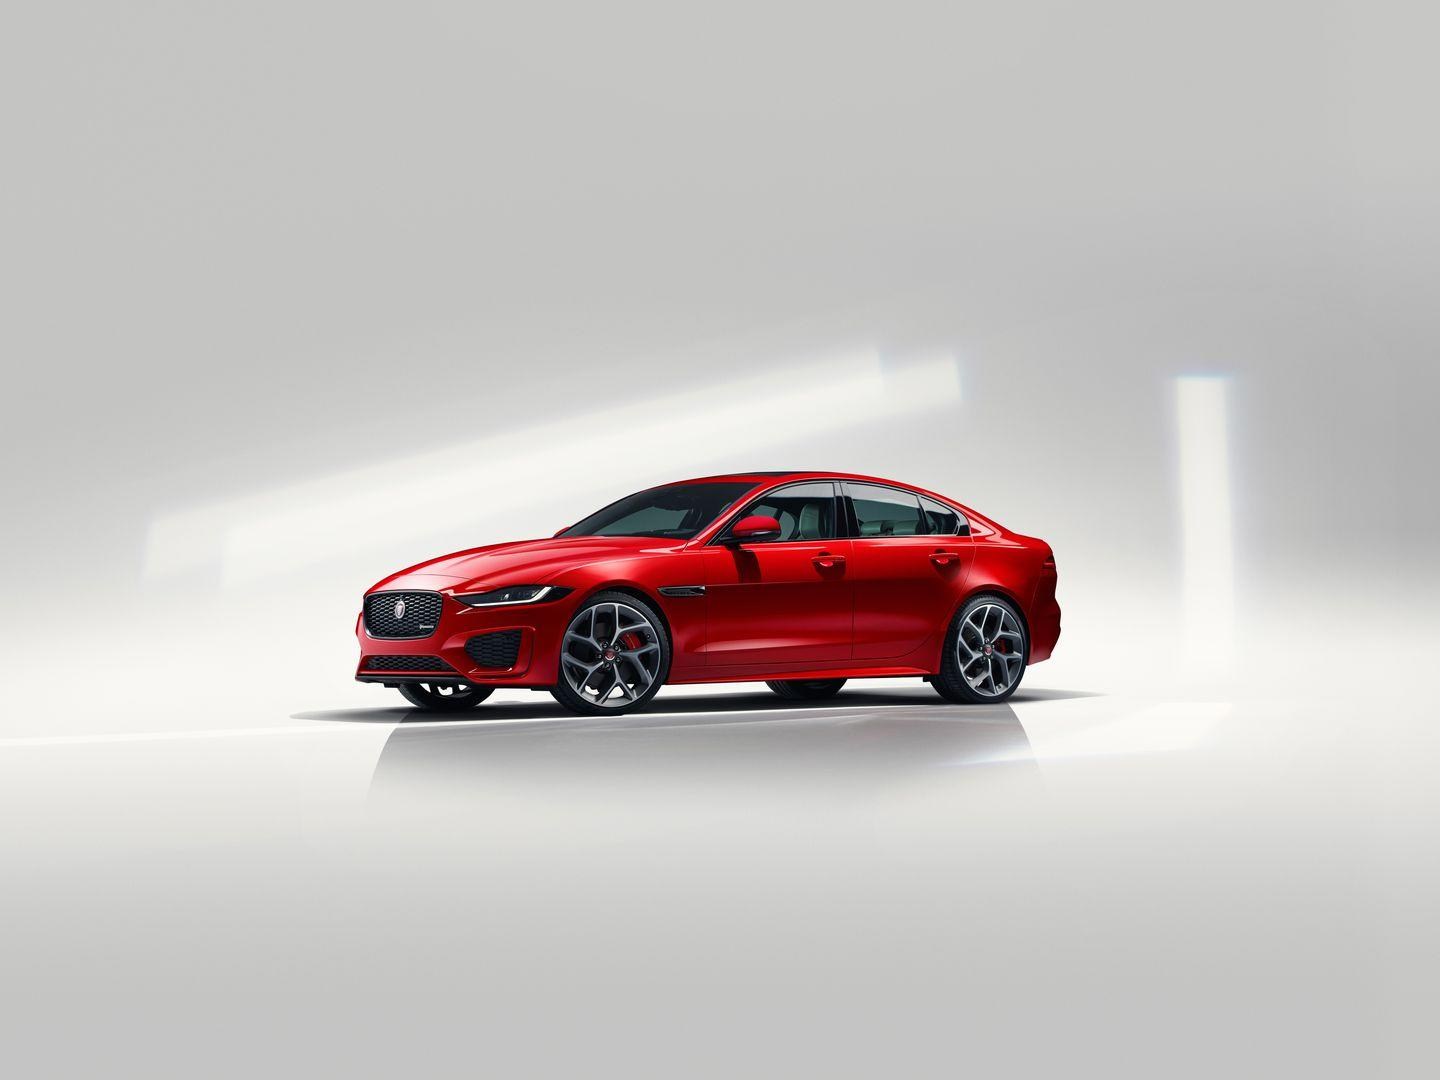 """<p>The XE has always been a sharp-looking car, but fairly subtle styling changes have actually done a lot to improve the look of the XE and keep it looking up to date. LED headlights with a more modern design are now standard, and the LED taillights have been redesigned to align with those of other Jaguar models like <a href=""""https://www.caranddriver.com/jaguar/e-pace"""" rel=""""nofollow noopener"""" target=""""_blank"""" data-ylk=""""slk:the E-Pace"""" class=""""link rapid-noclick-resp"""">the E-Pace</a>.</p>"""